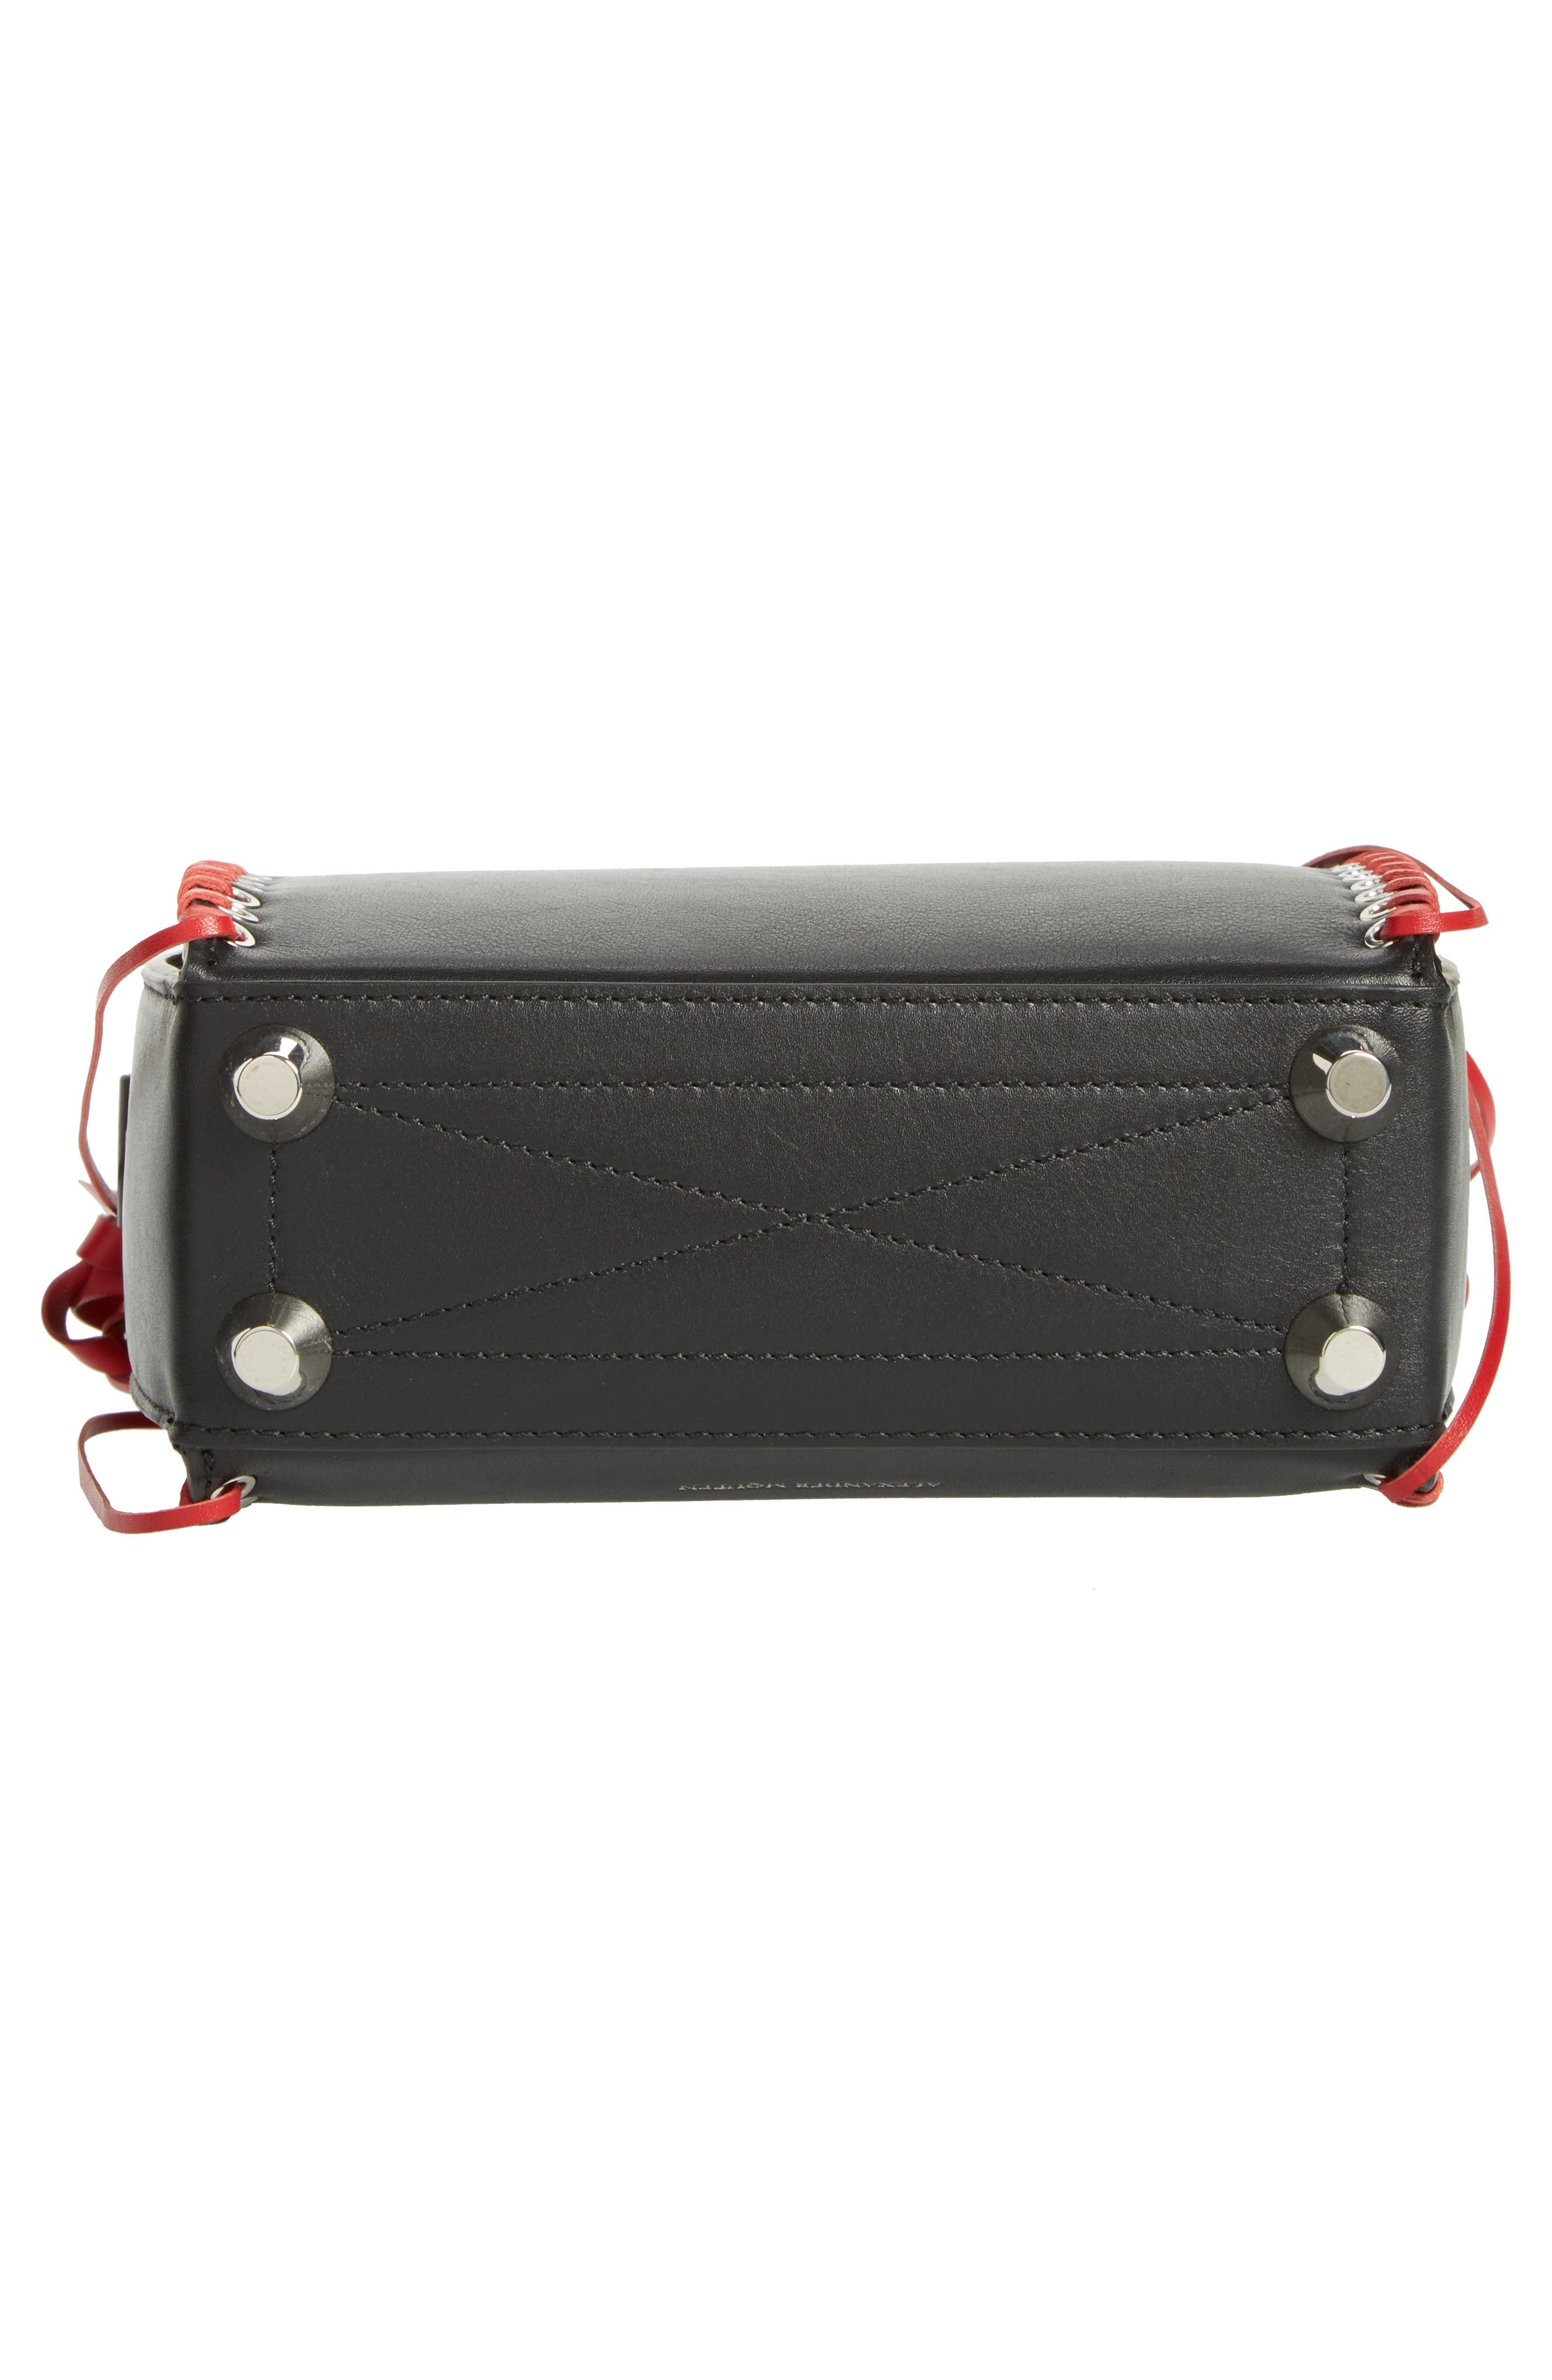 Box Bag 19 Calfskin Bag,                             Alternate thumbnail 7, color,                             Black/ Red